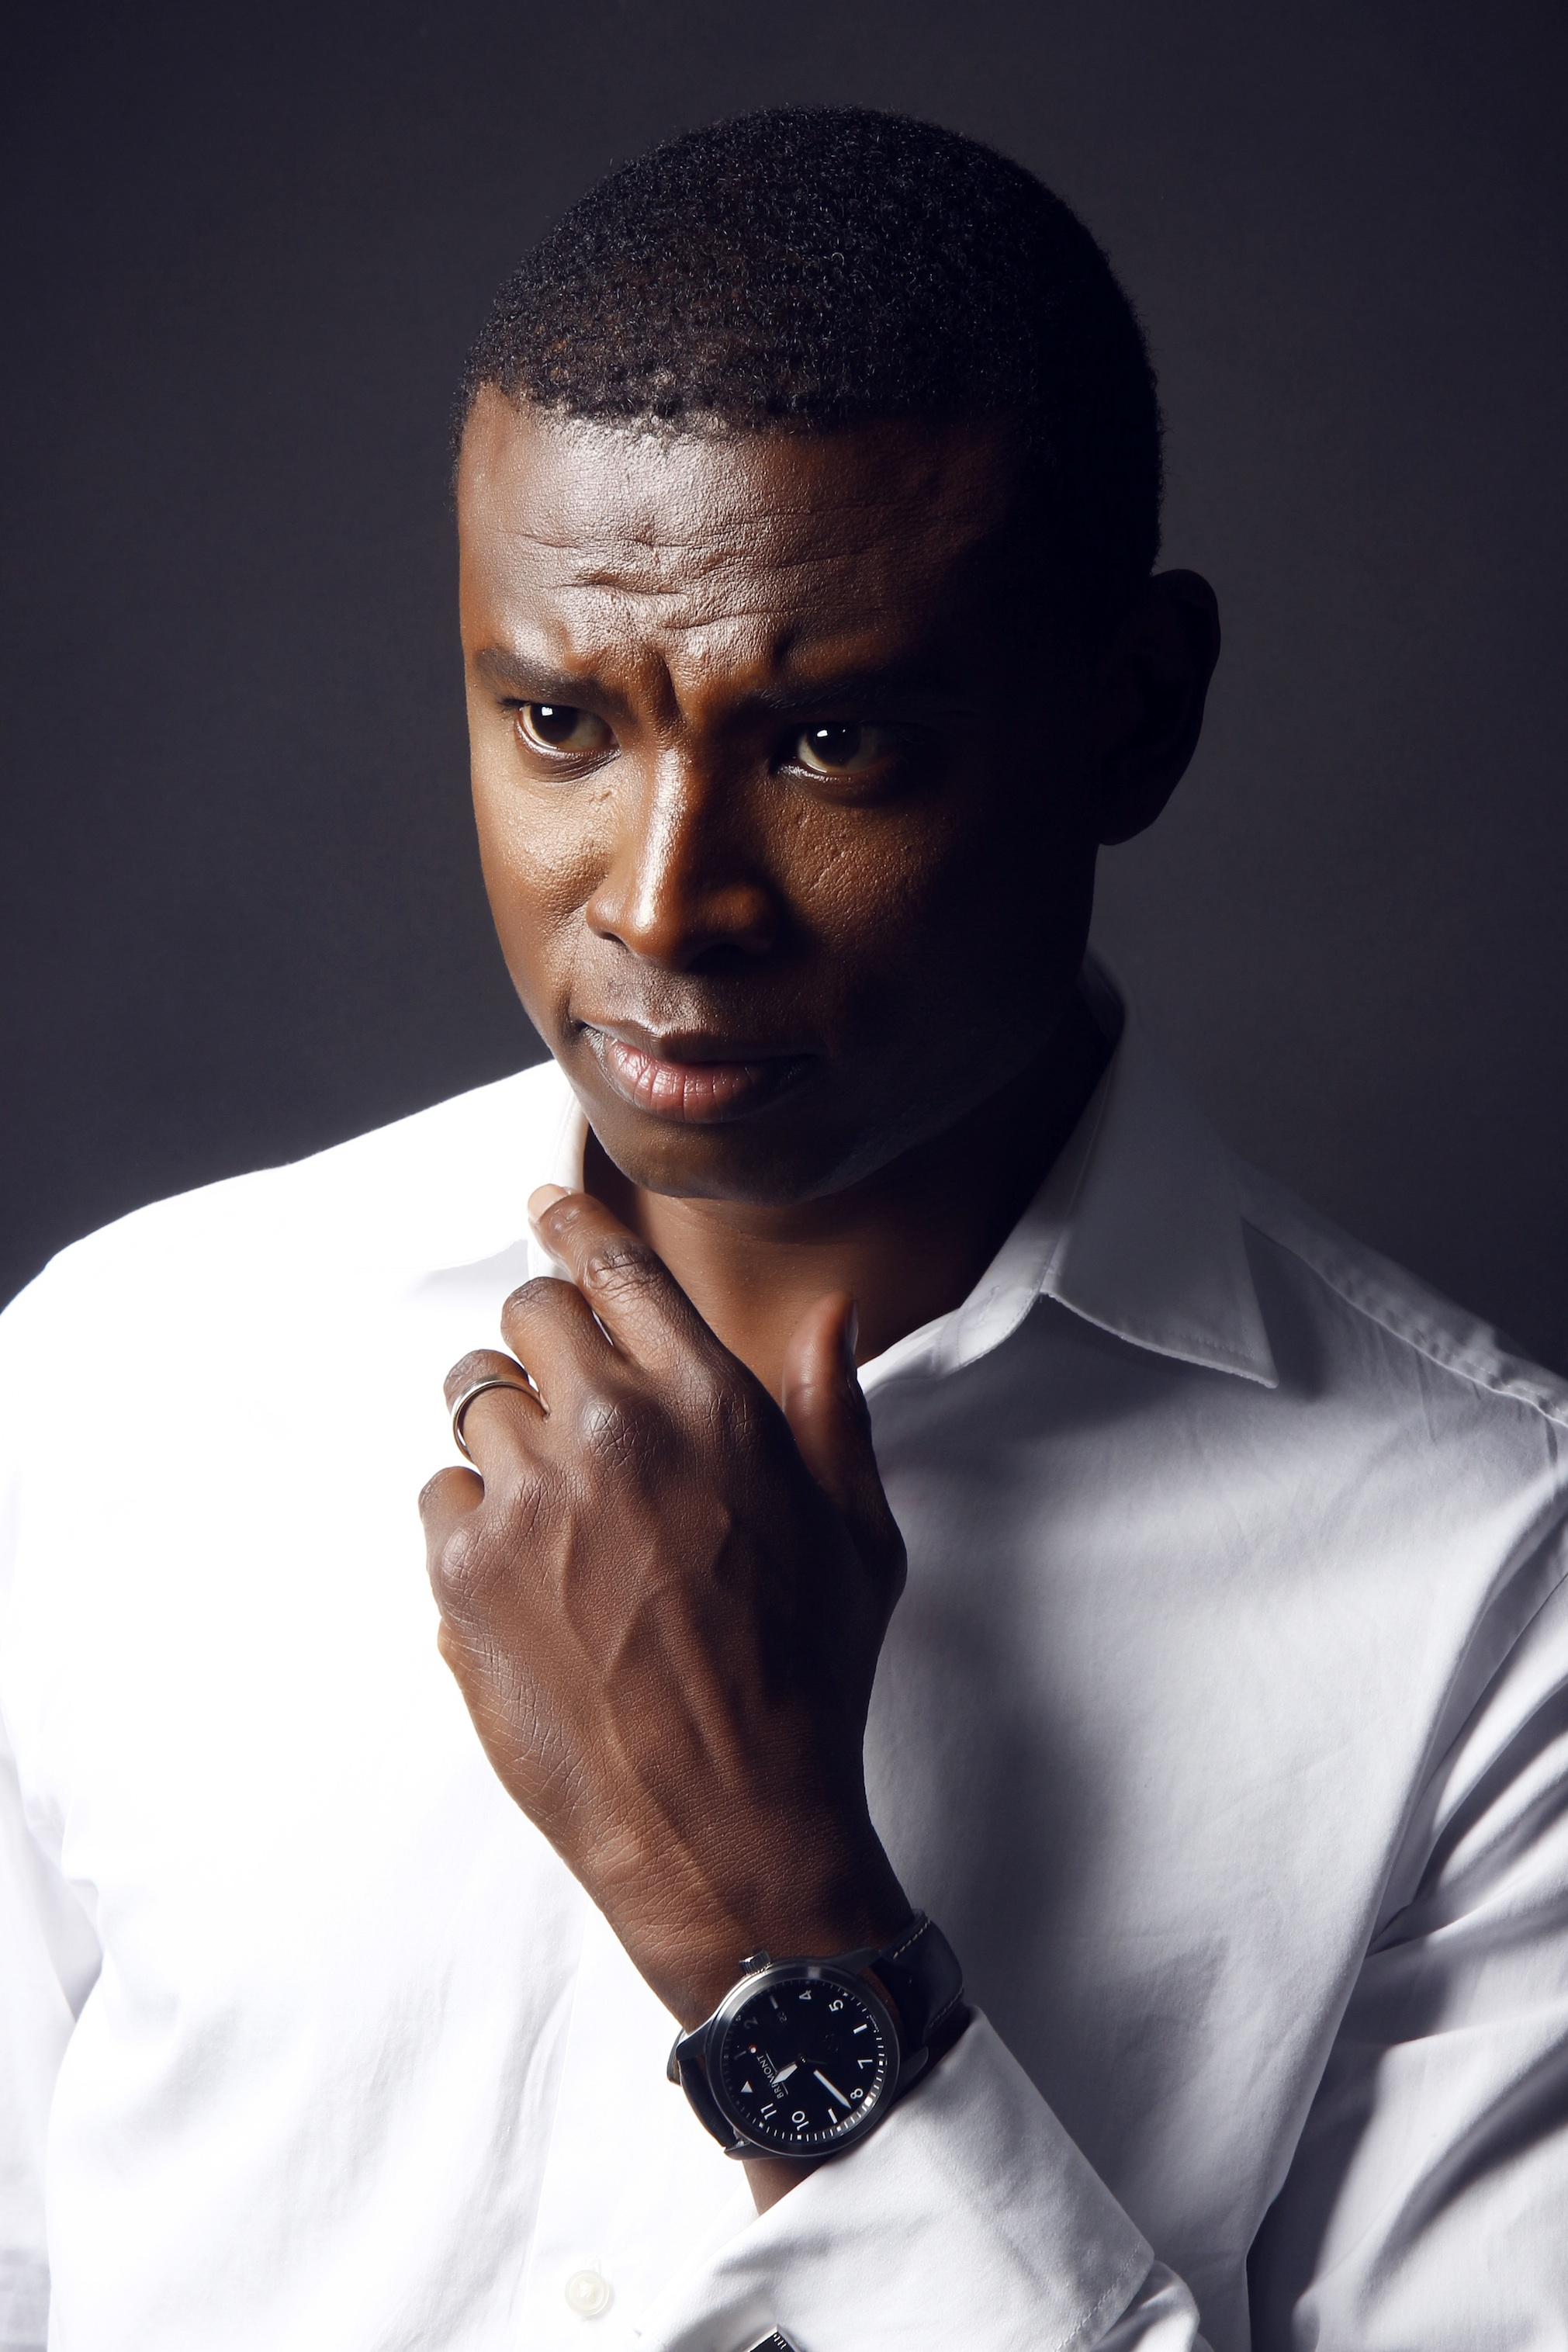 Photography of Man in White Shirt With Round Black Analog Watch